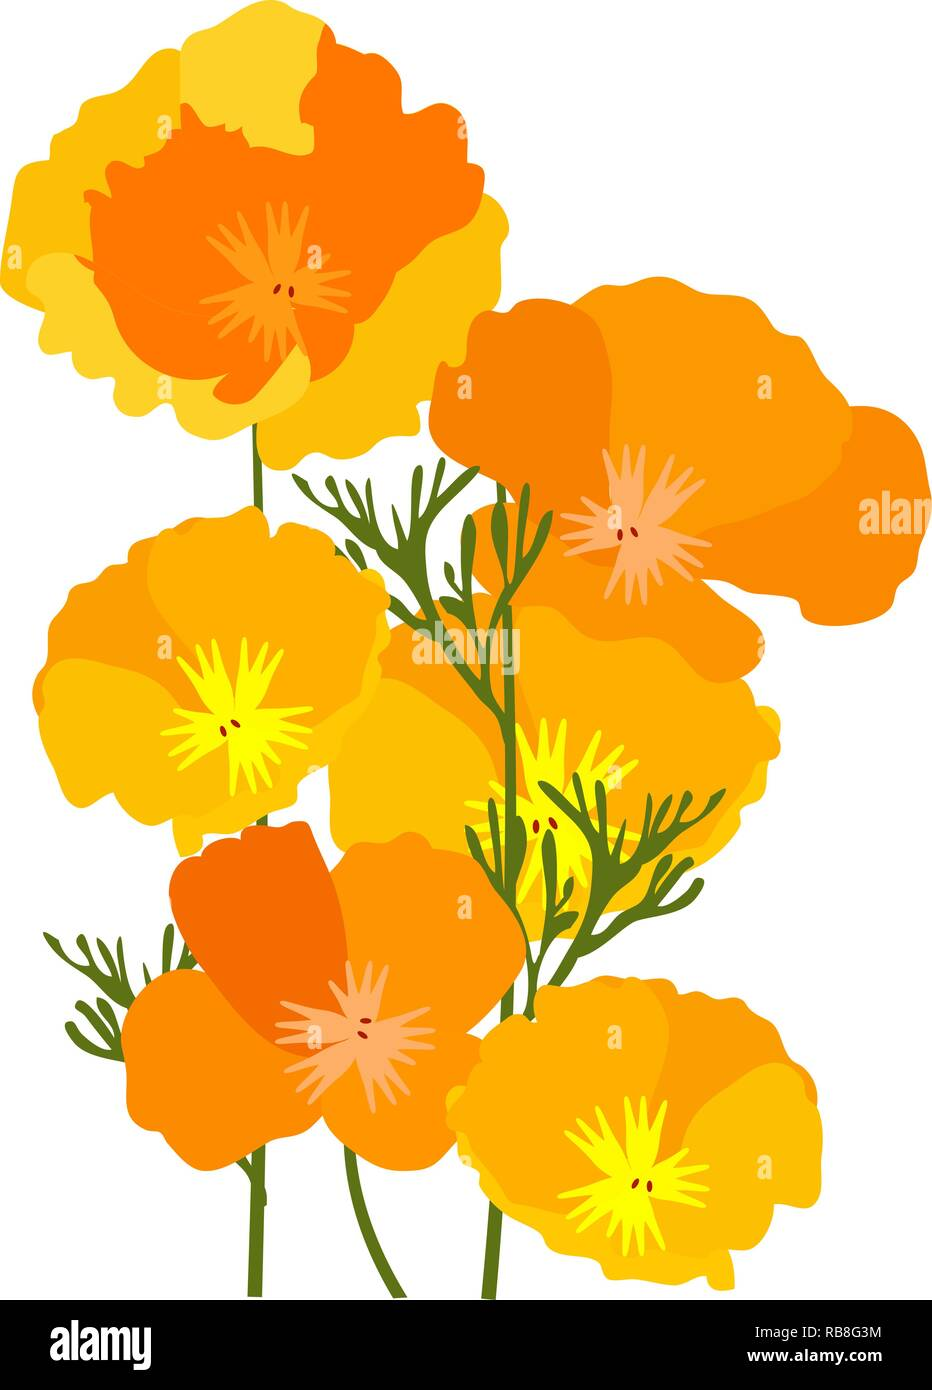 vector illustration of California state yellow and orange poppies. Stock Vector